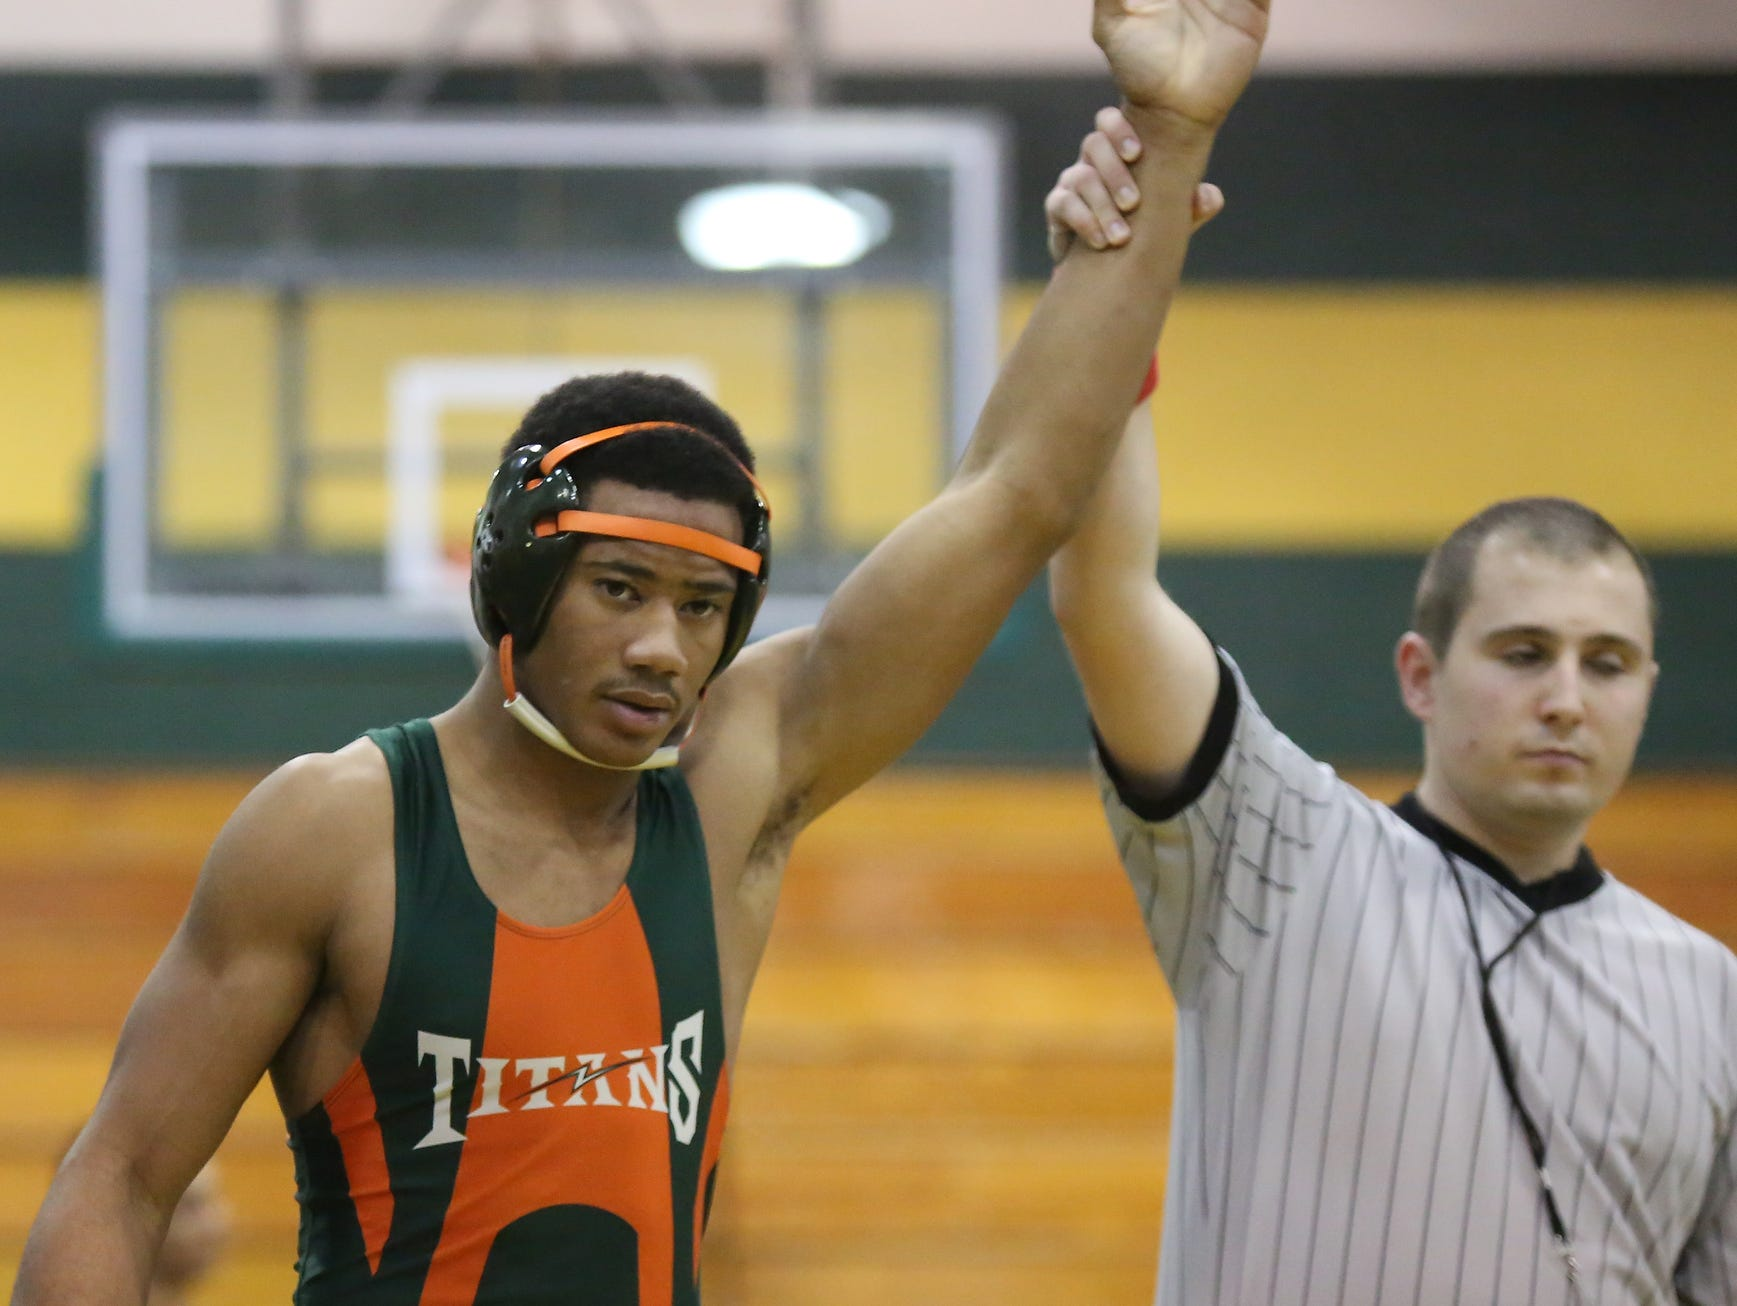 East Ramapo's Jhavon Innocent takes the win in a 170-pound match during a quad meet in the Section 1 dual meet championships at Ramapo High School in Spring Valley on Wednesday, Dec. 2, 2015. East Ramapo defeated Yonkers 53-29 and advances to the semifinals.